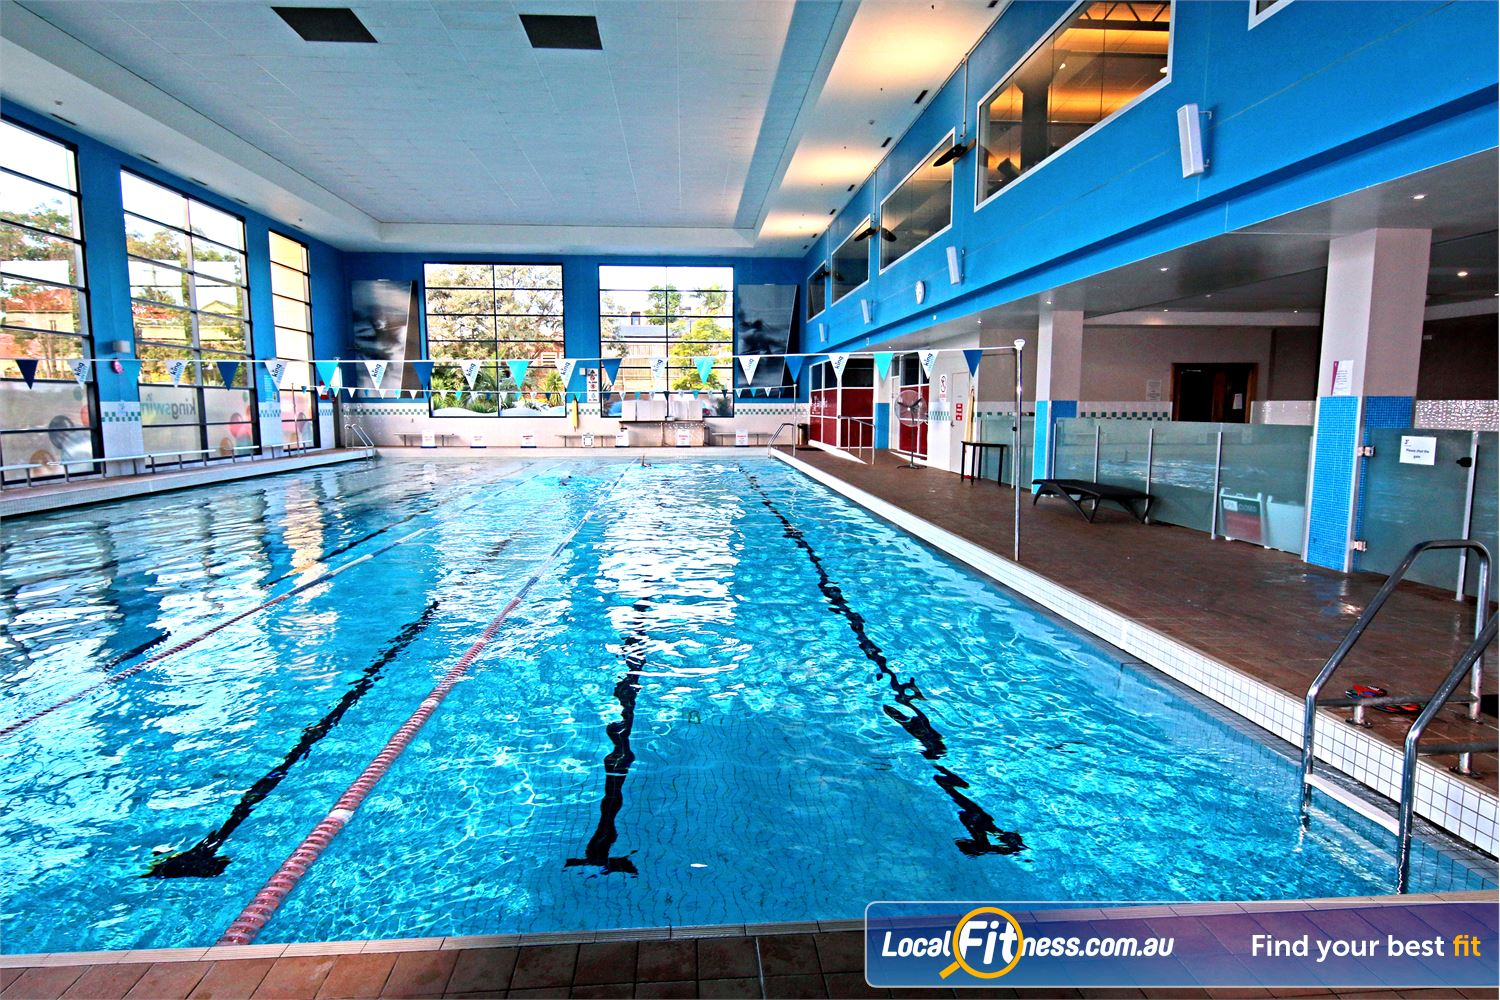 Fitness First Near Belmont Enjoy our indoor Carindale swimming pool perfect for lap swimming and aqua classes.